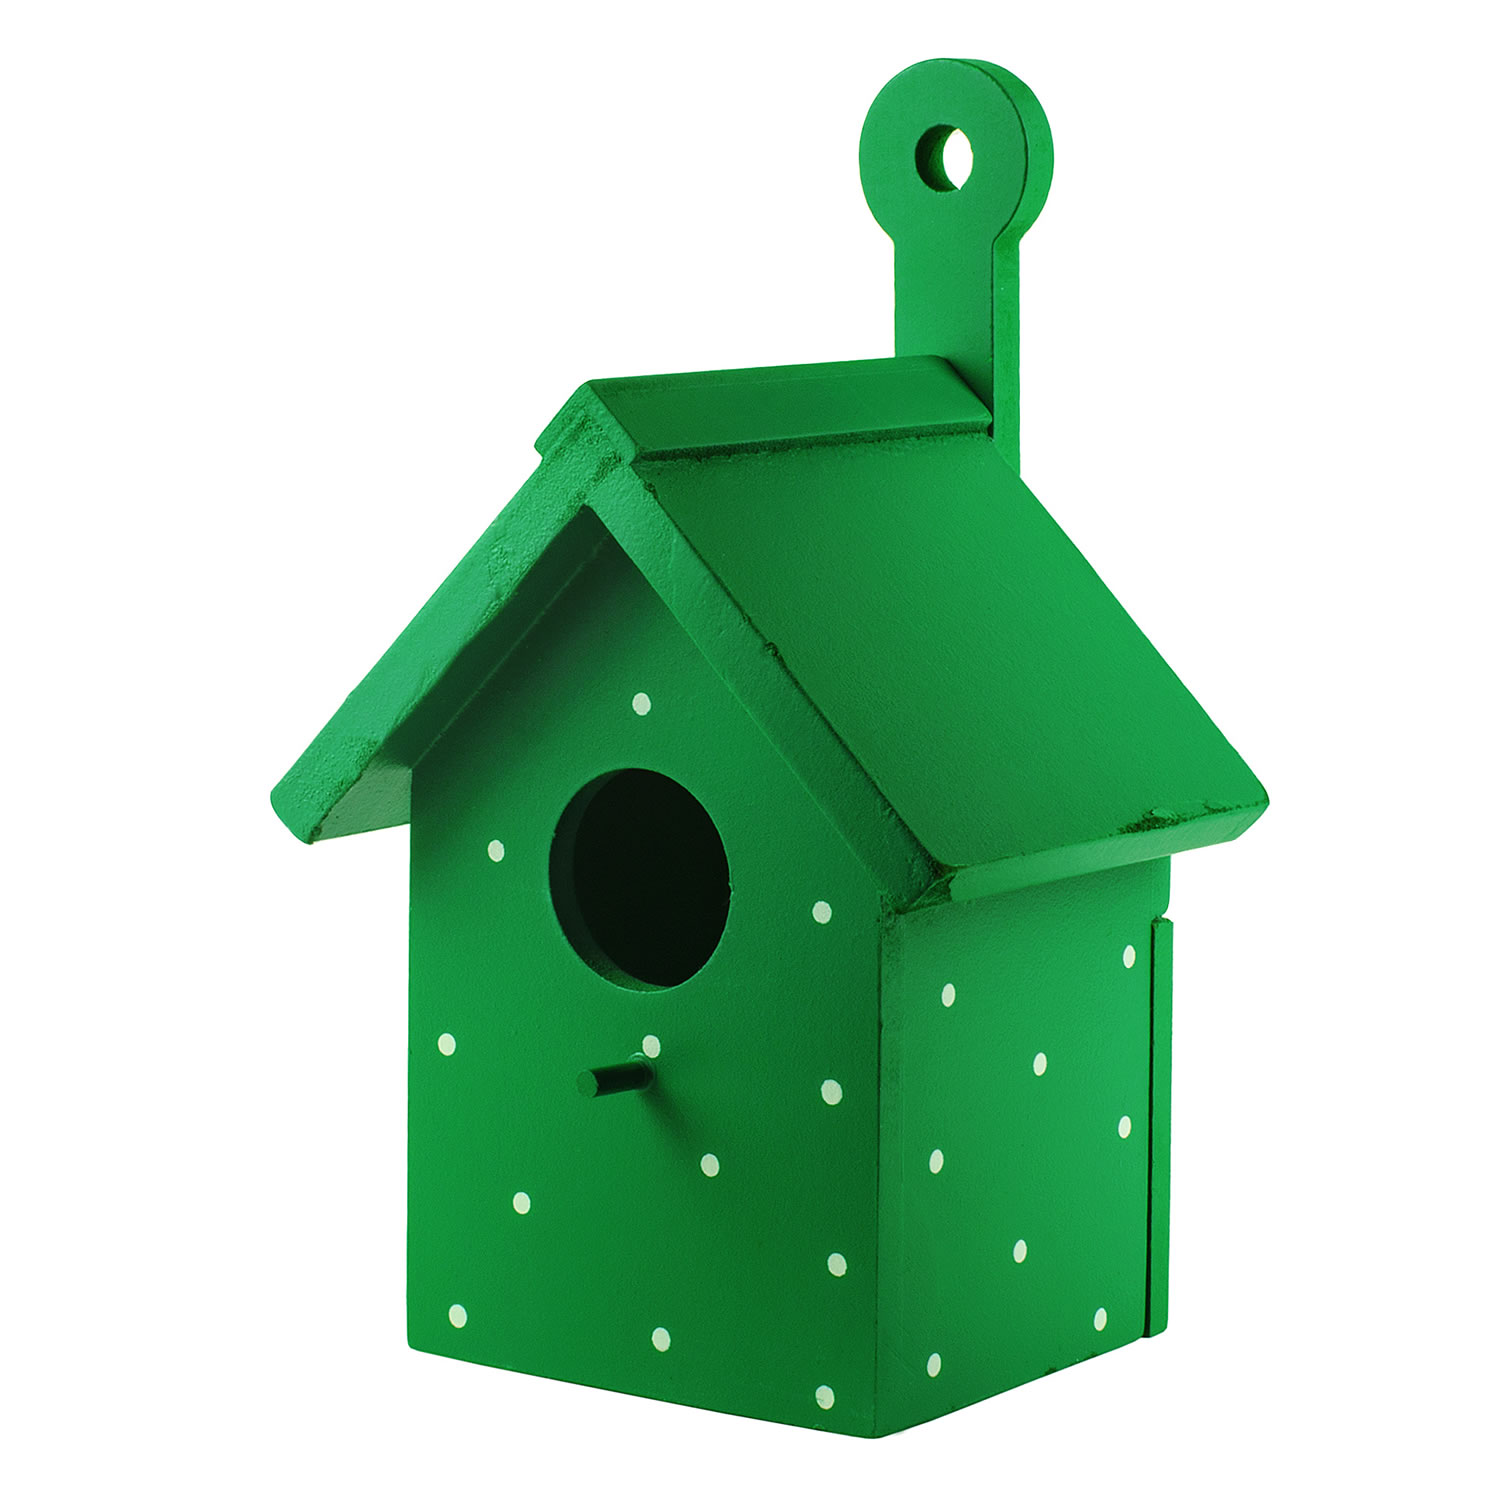 Bright Green House Of Bright Green Wooden Wall Mountable Decorative Garden Bird Box House